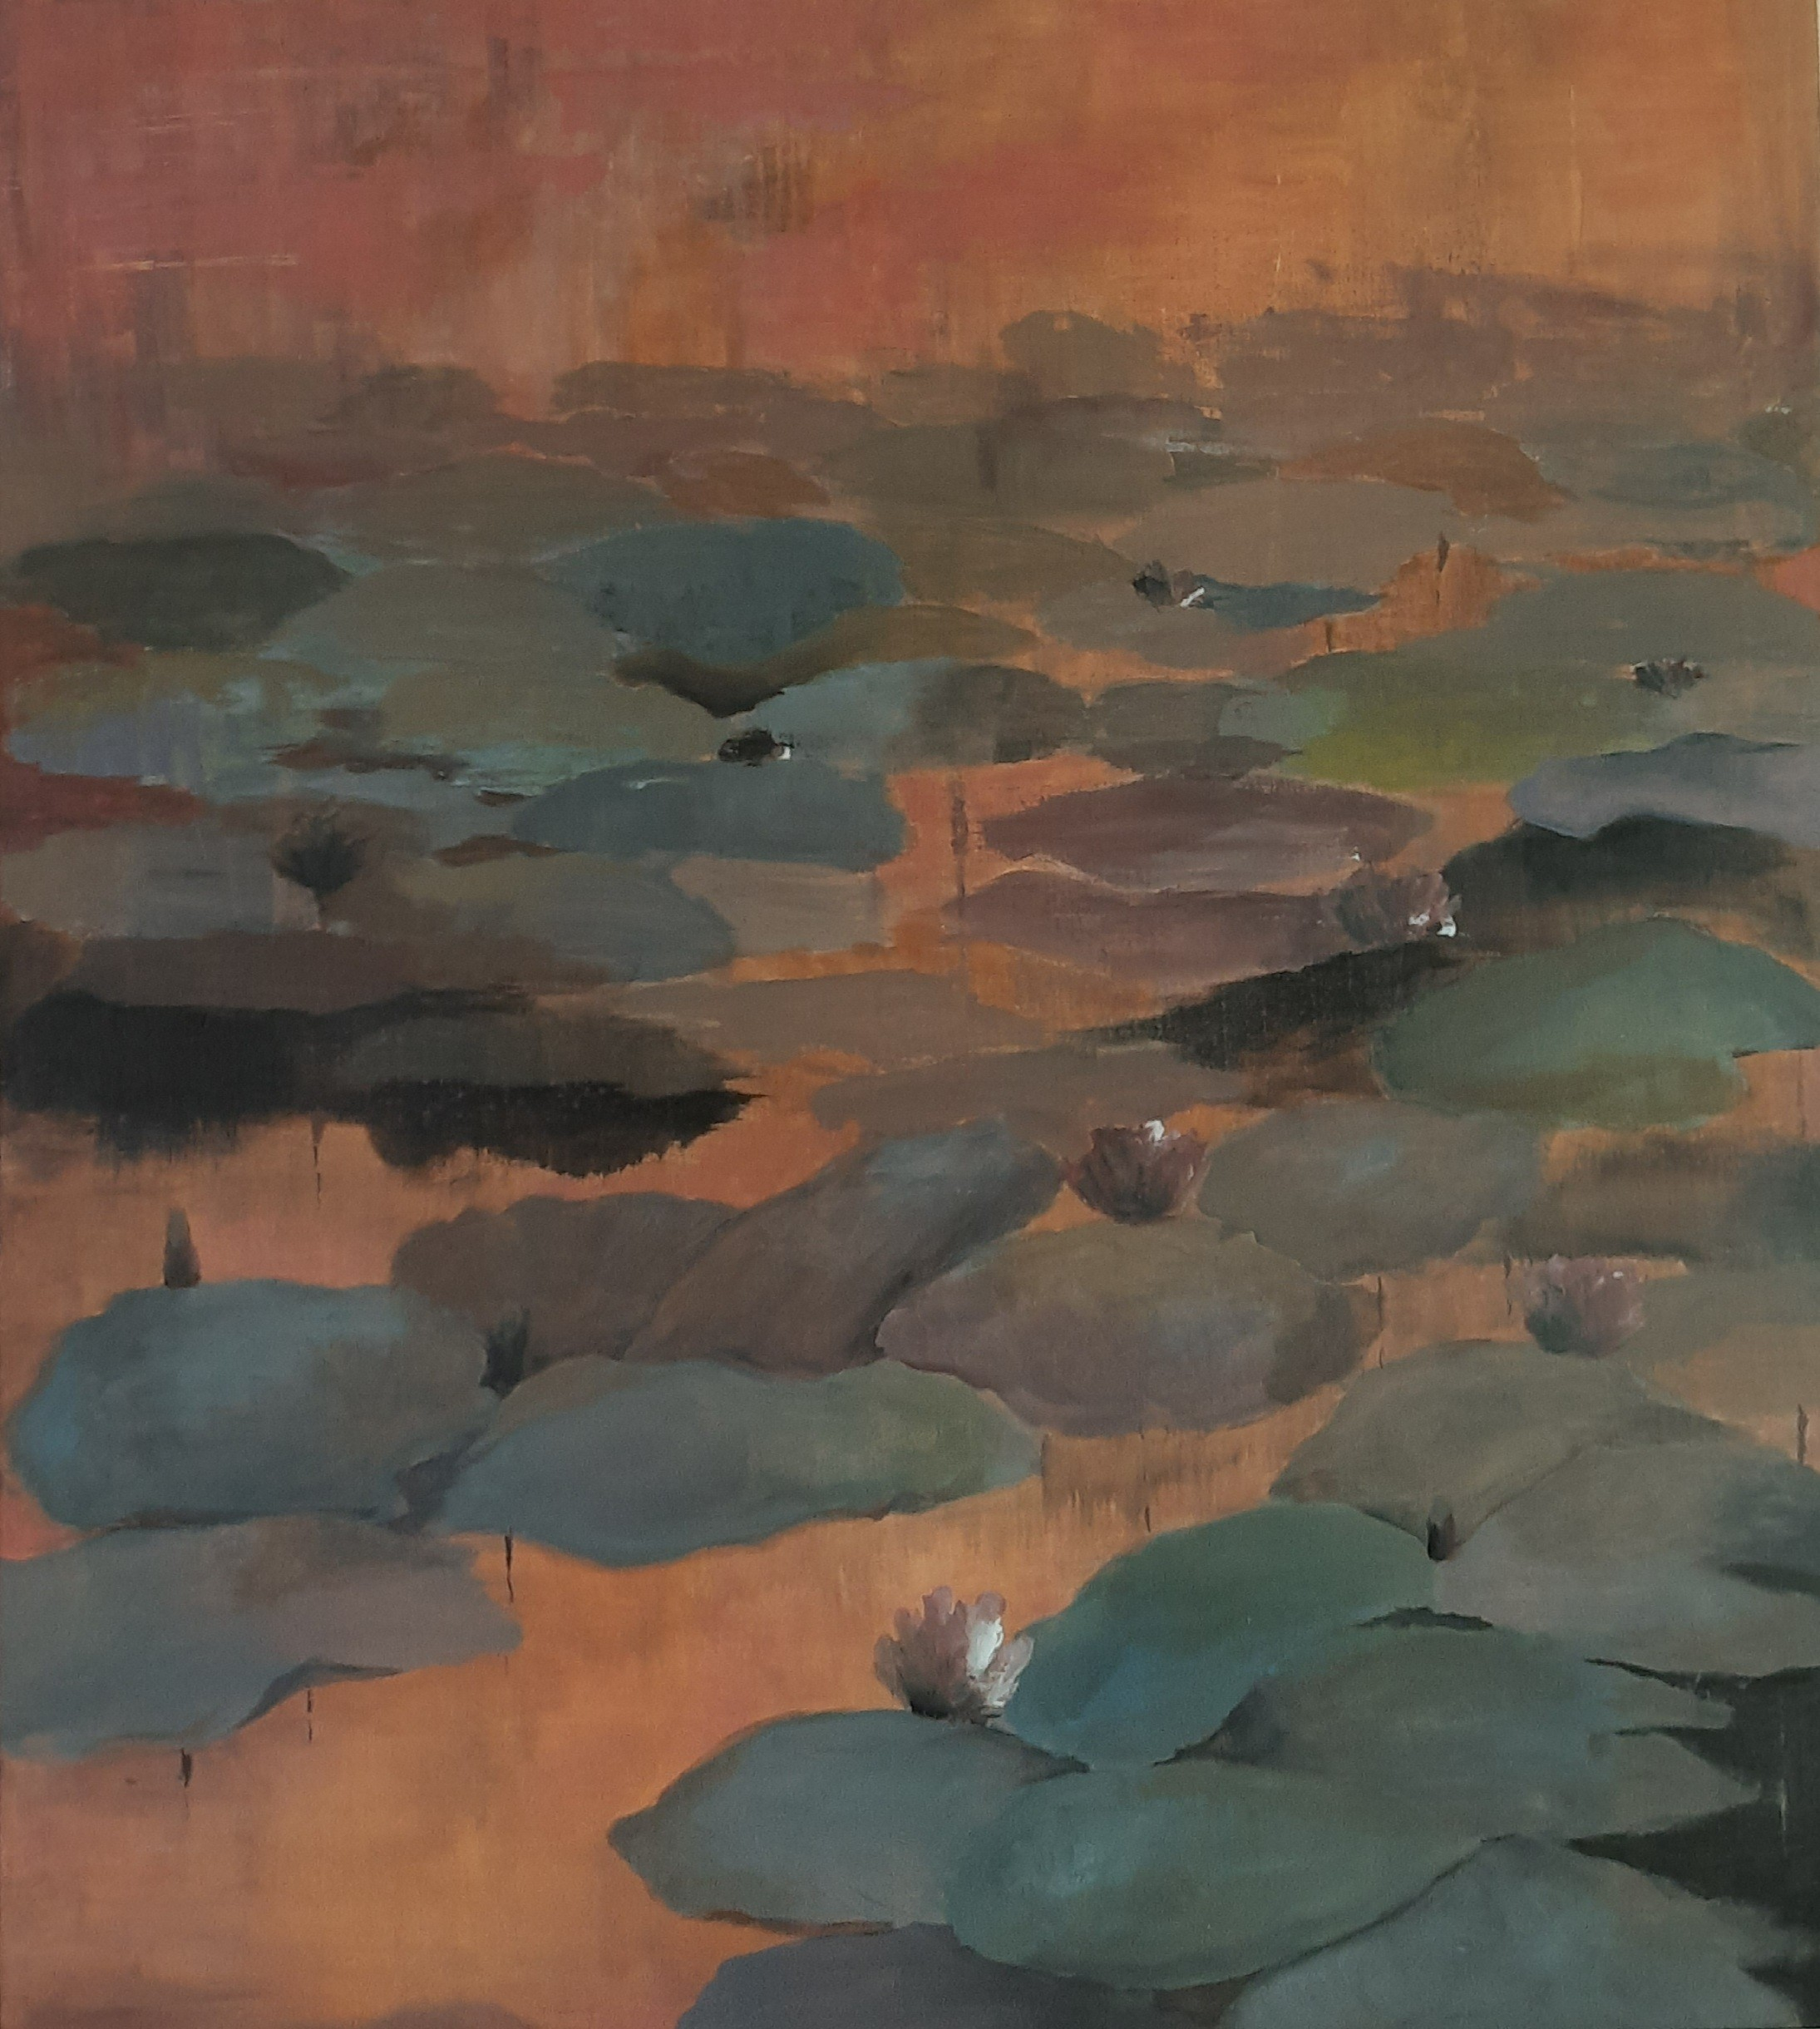 Water lilies in dusky waters by Jean wijesekera